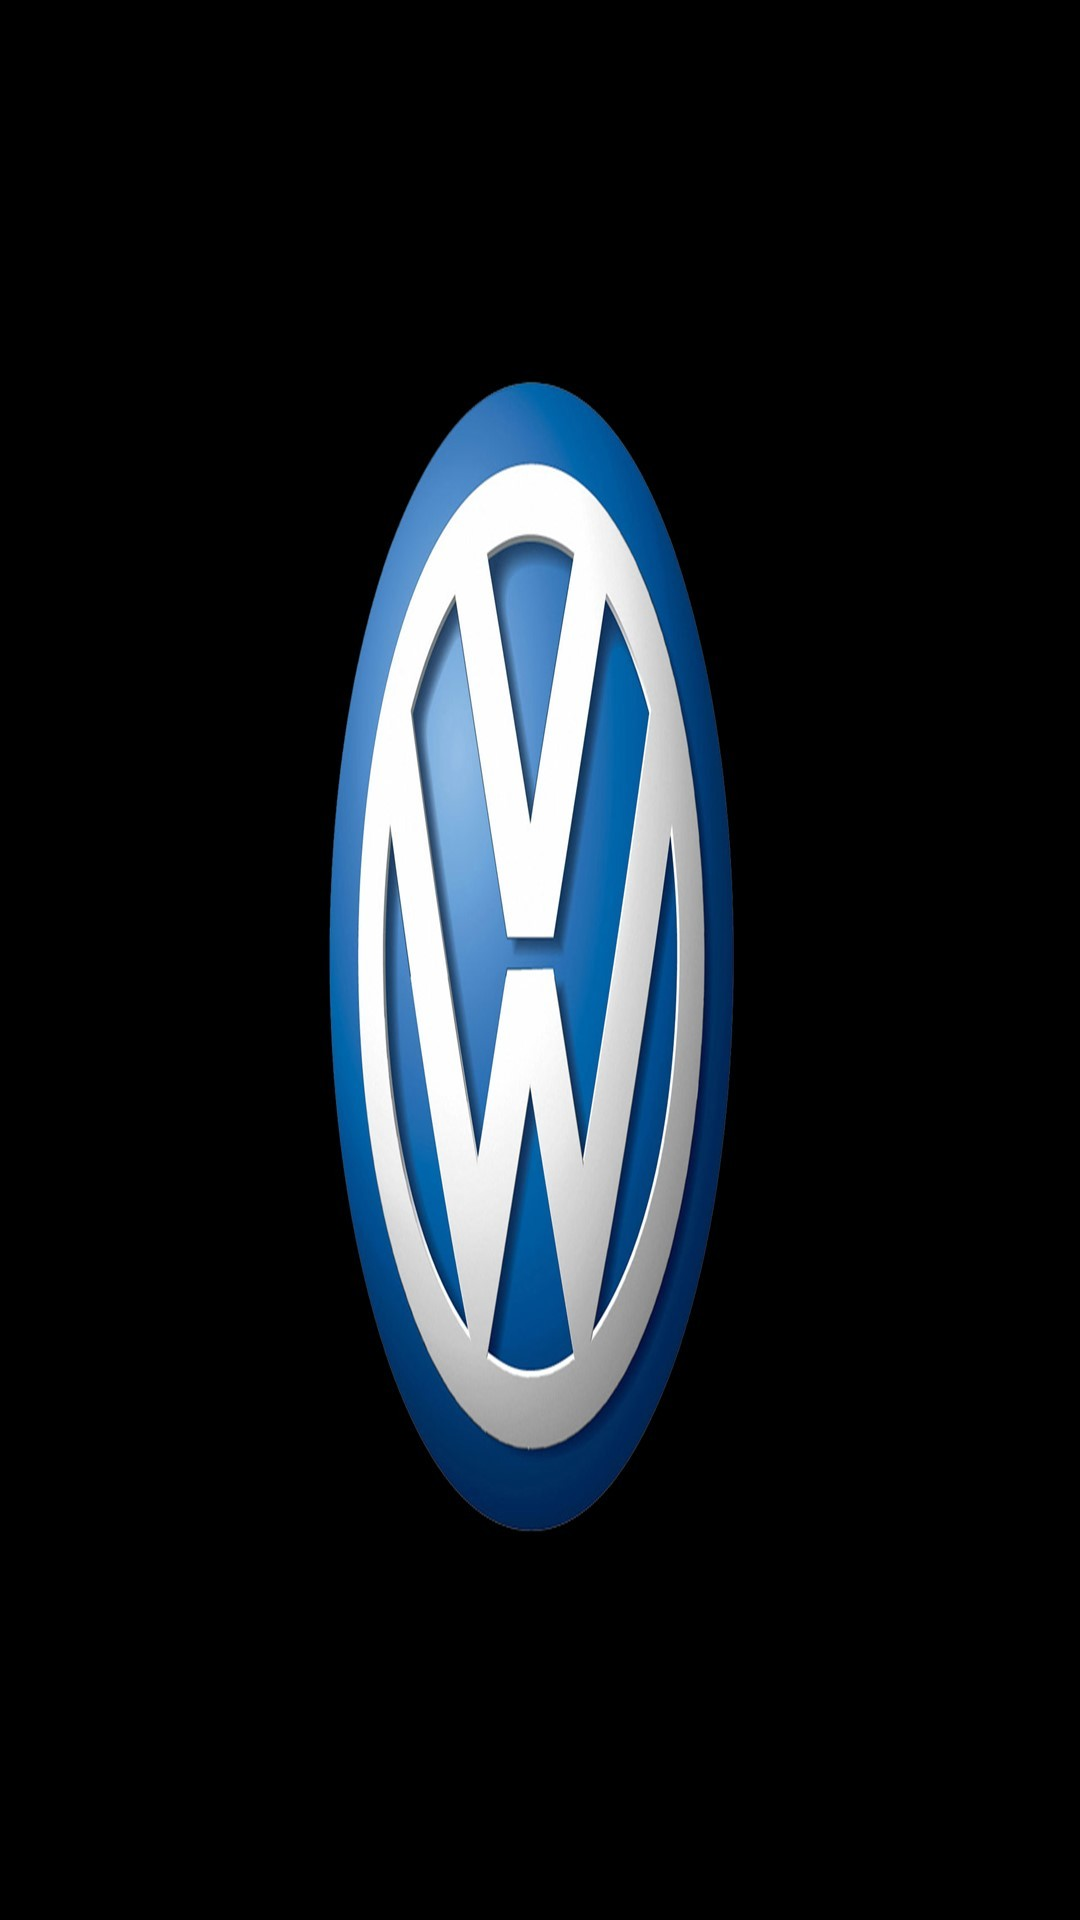 Res: 1080x1920, Download PreviewVw Logo Wallpaper